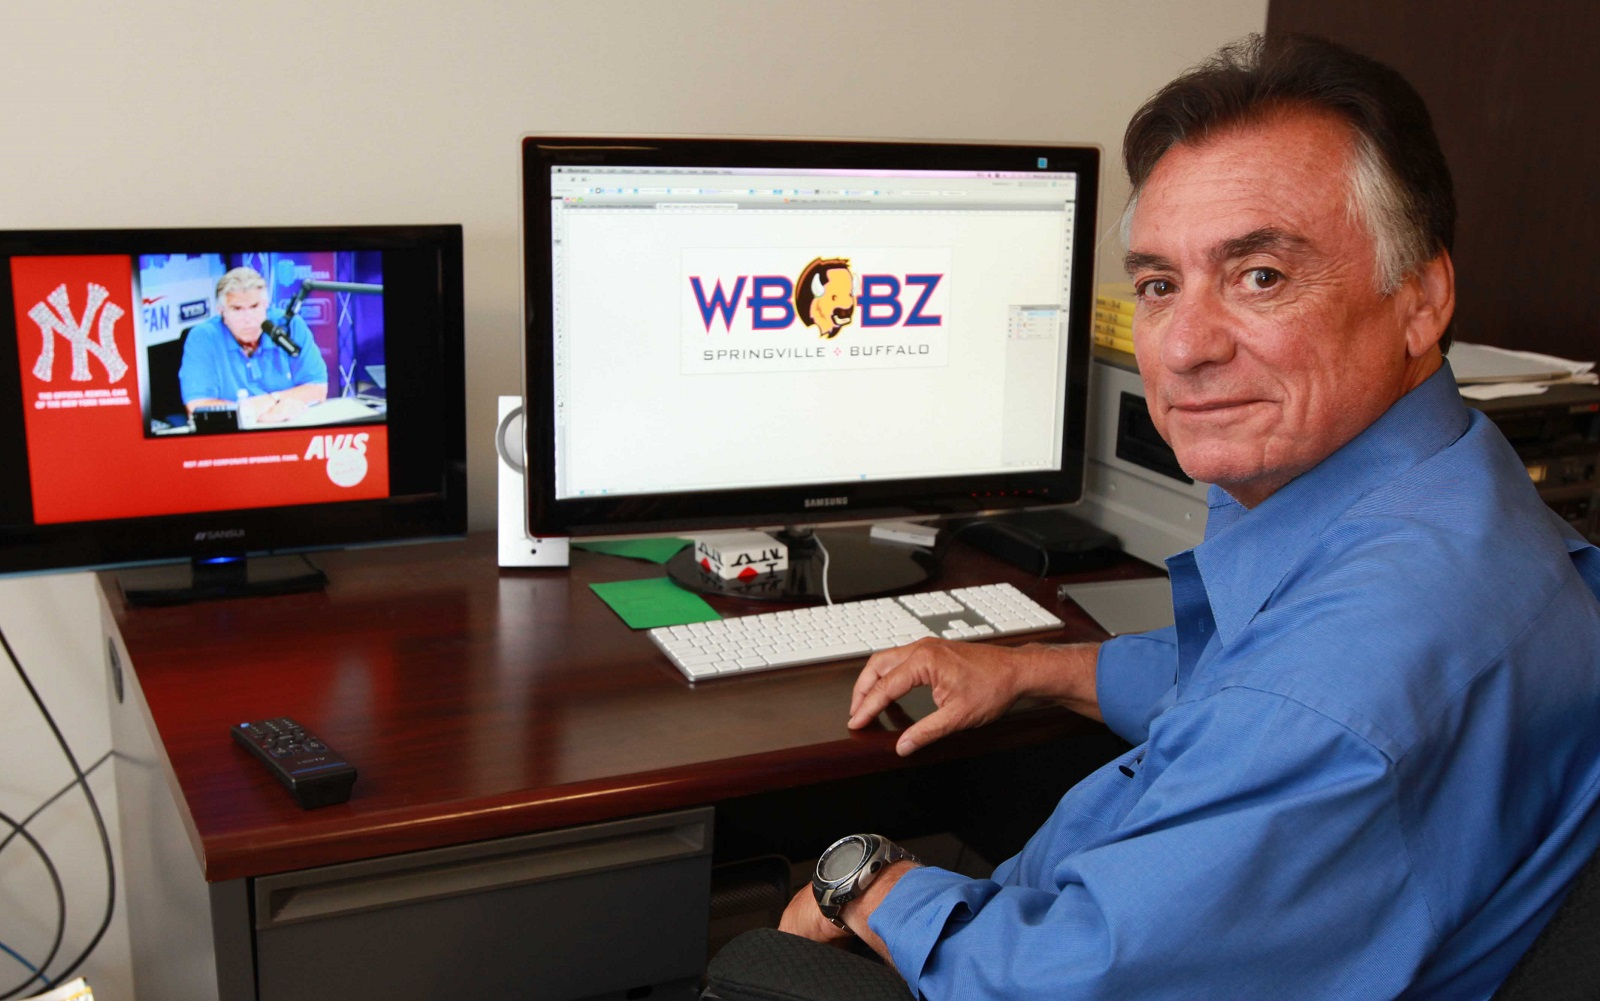 WBBZ-TV owner Phil Arno didn't gte any help in the spectrum auction. (Buffalo News file photo)